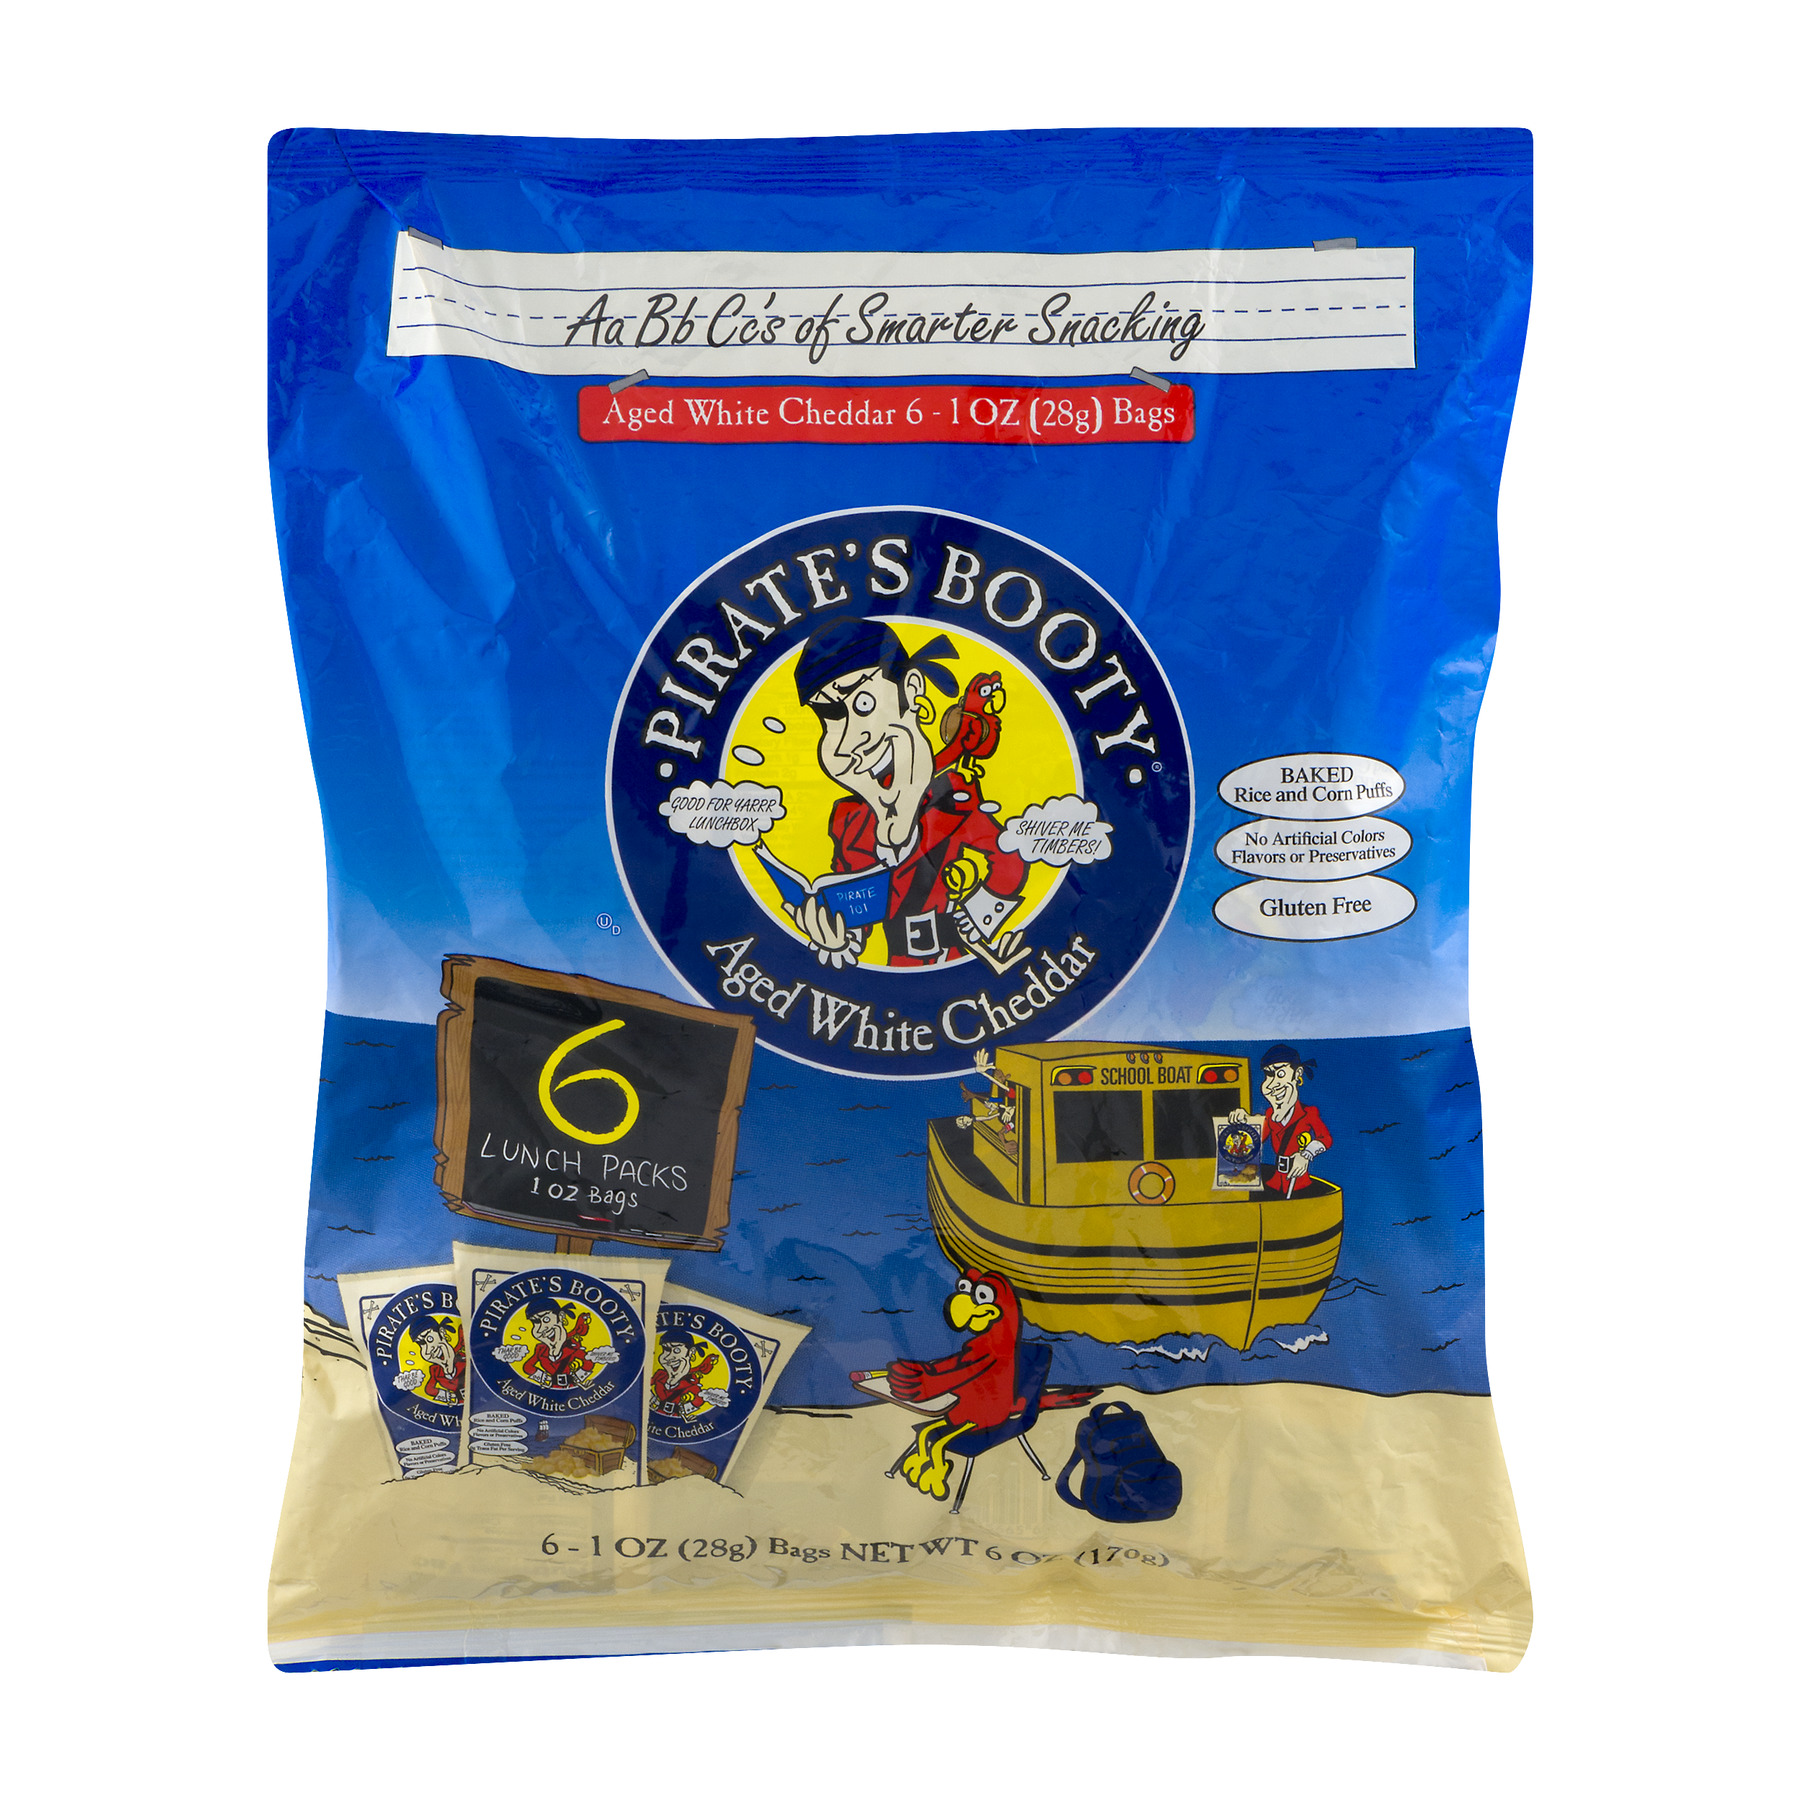 Pirate's Booty Aged White Cheddar Bags, 1 oz, 6 count